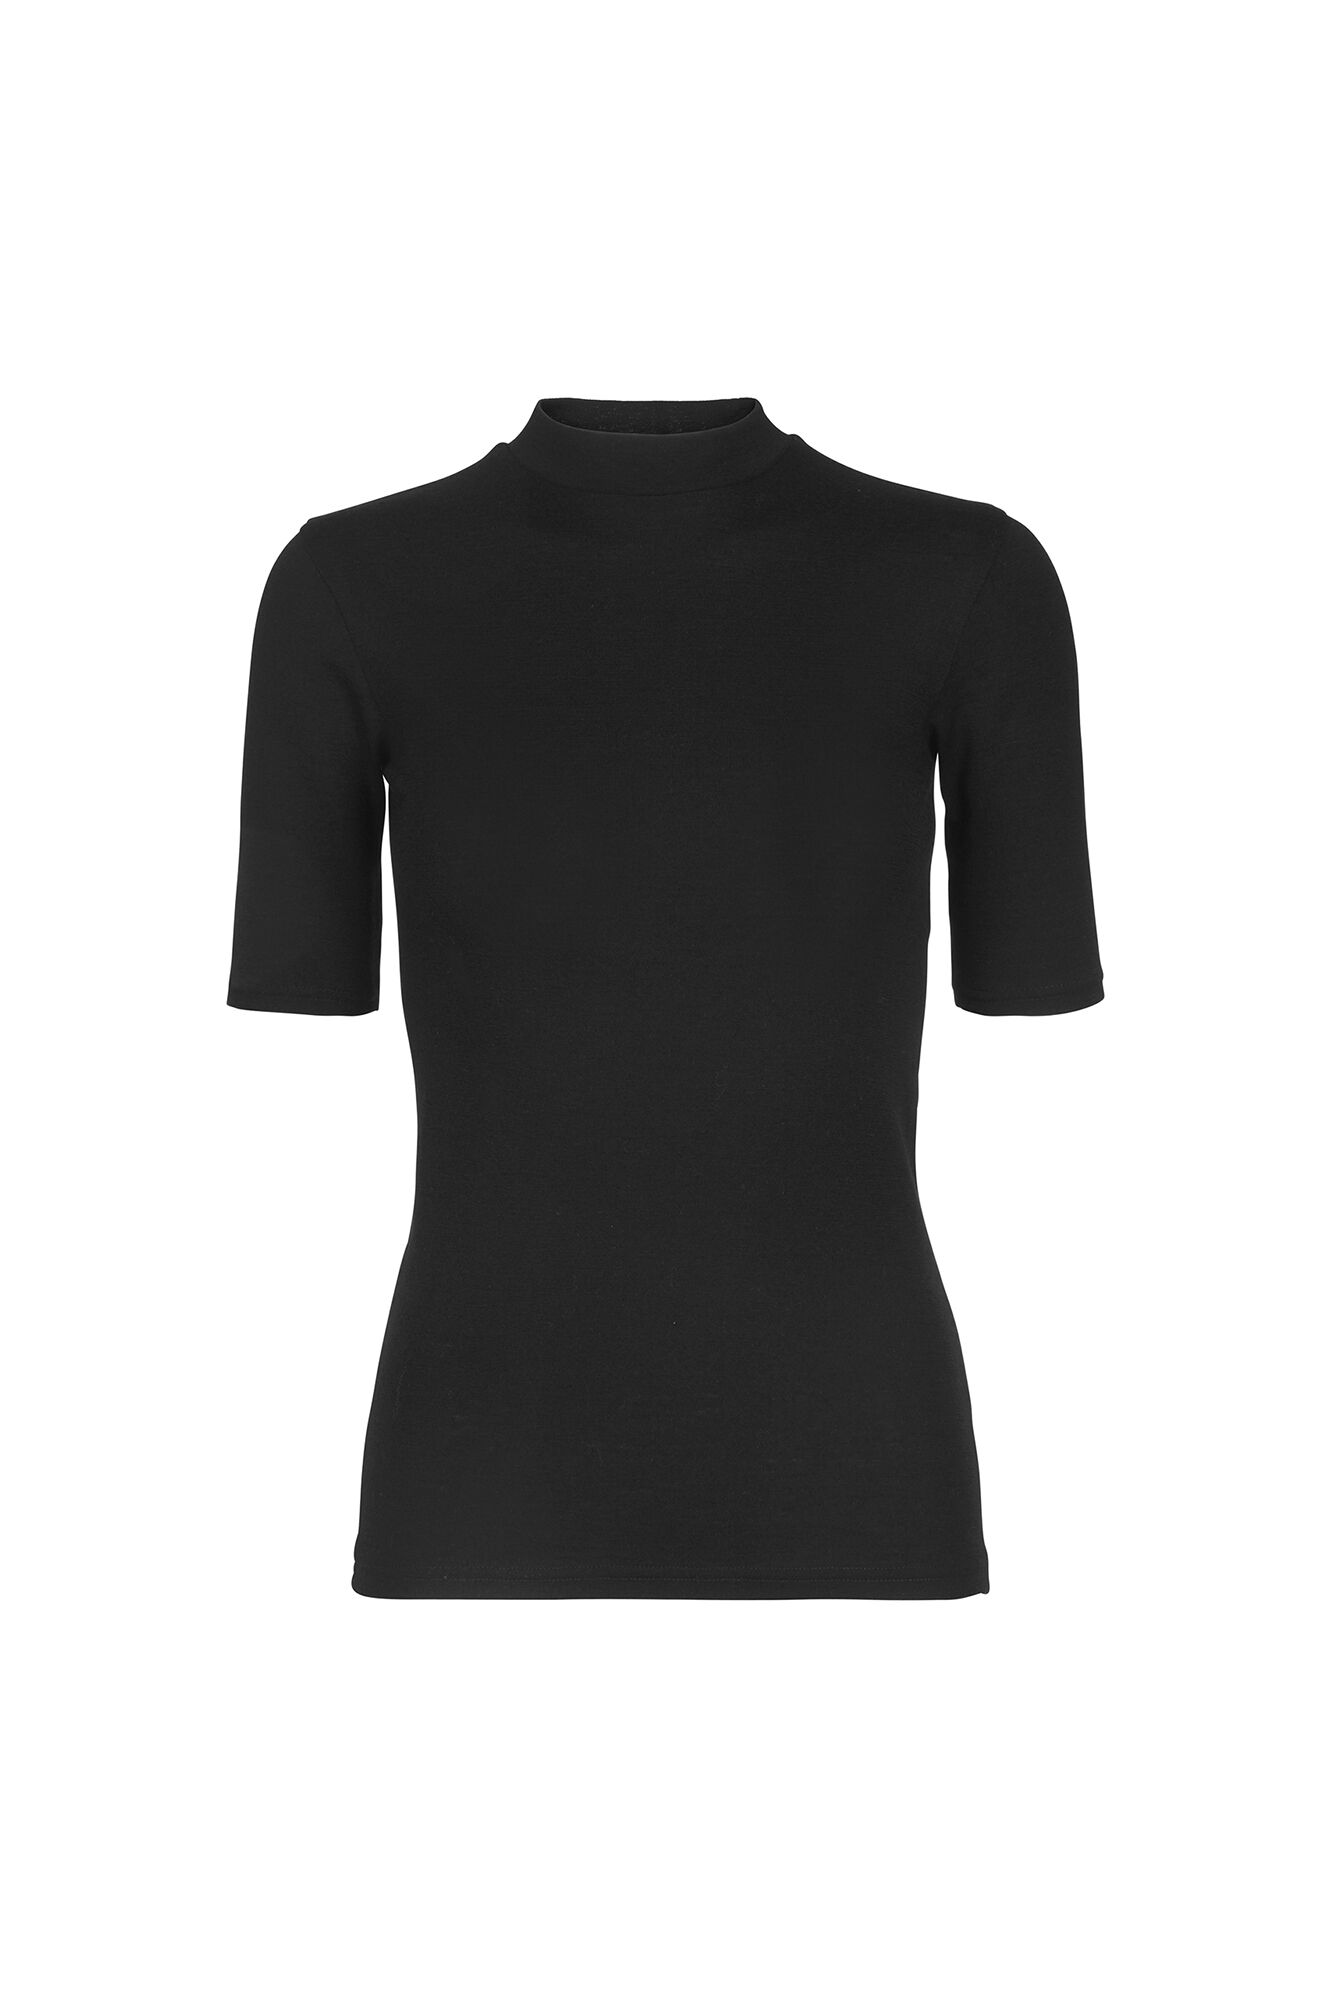 ENVILLY SS T-NECK TEE 5866, BLACK